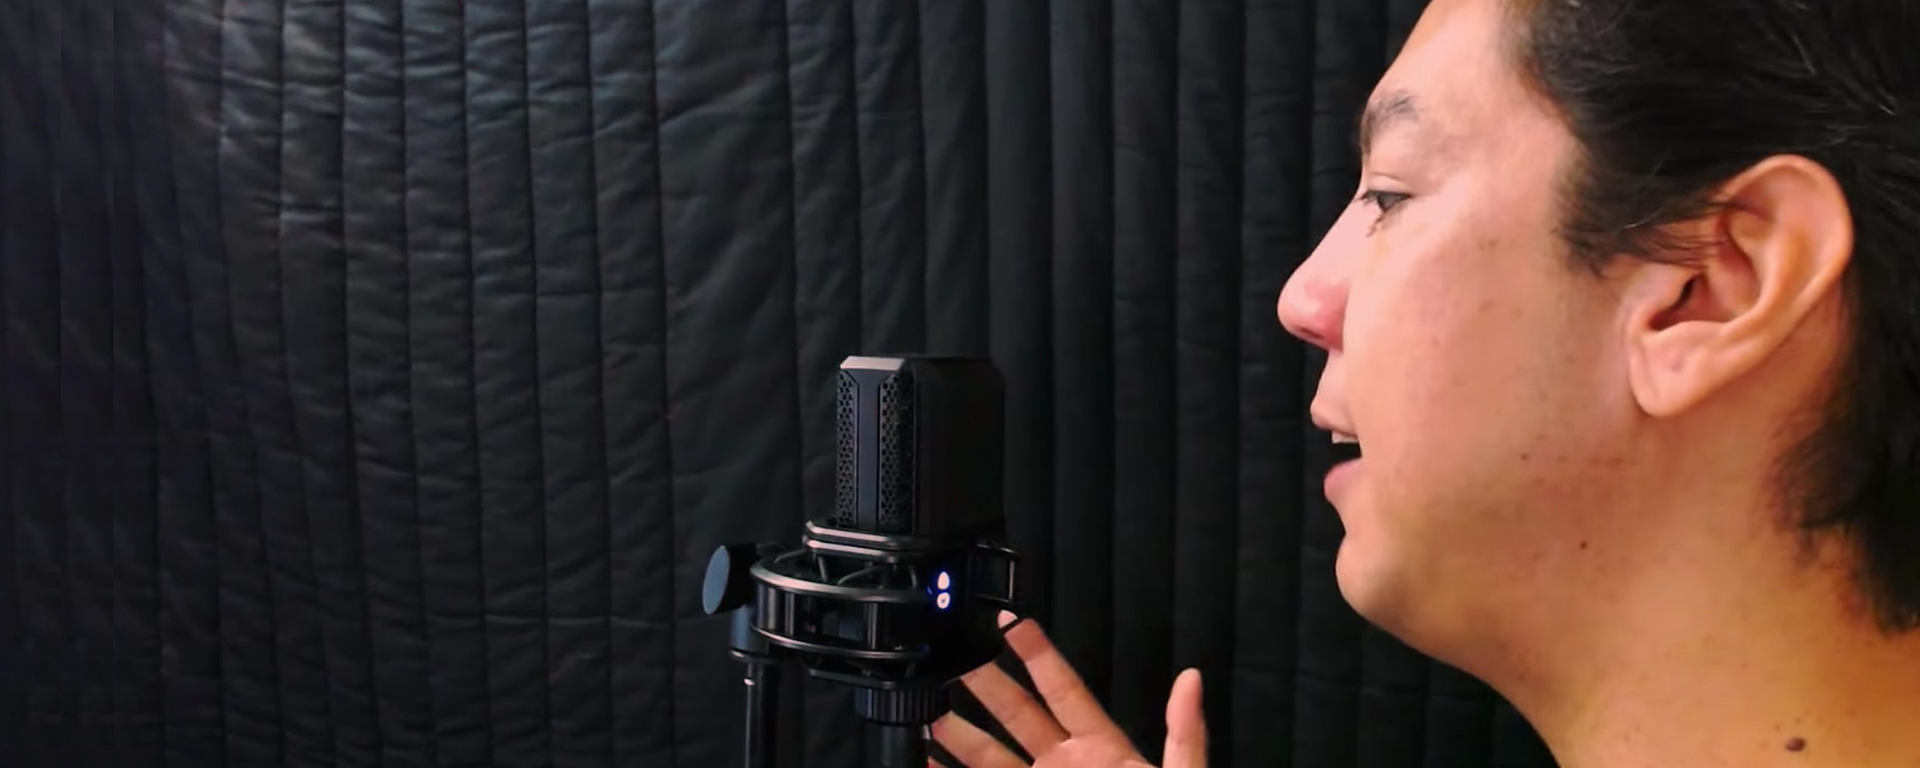 Lewin Barringer of Garaageband&Beyond gives recording tips and tricks for vocalist beginners